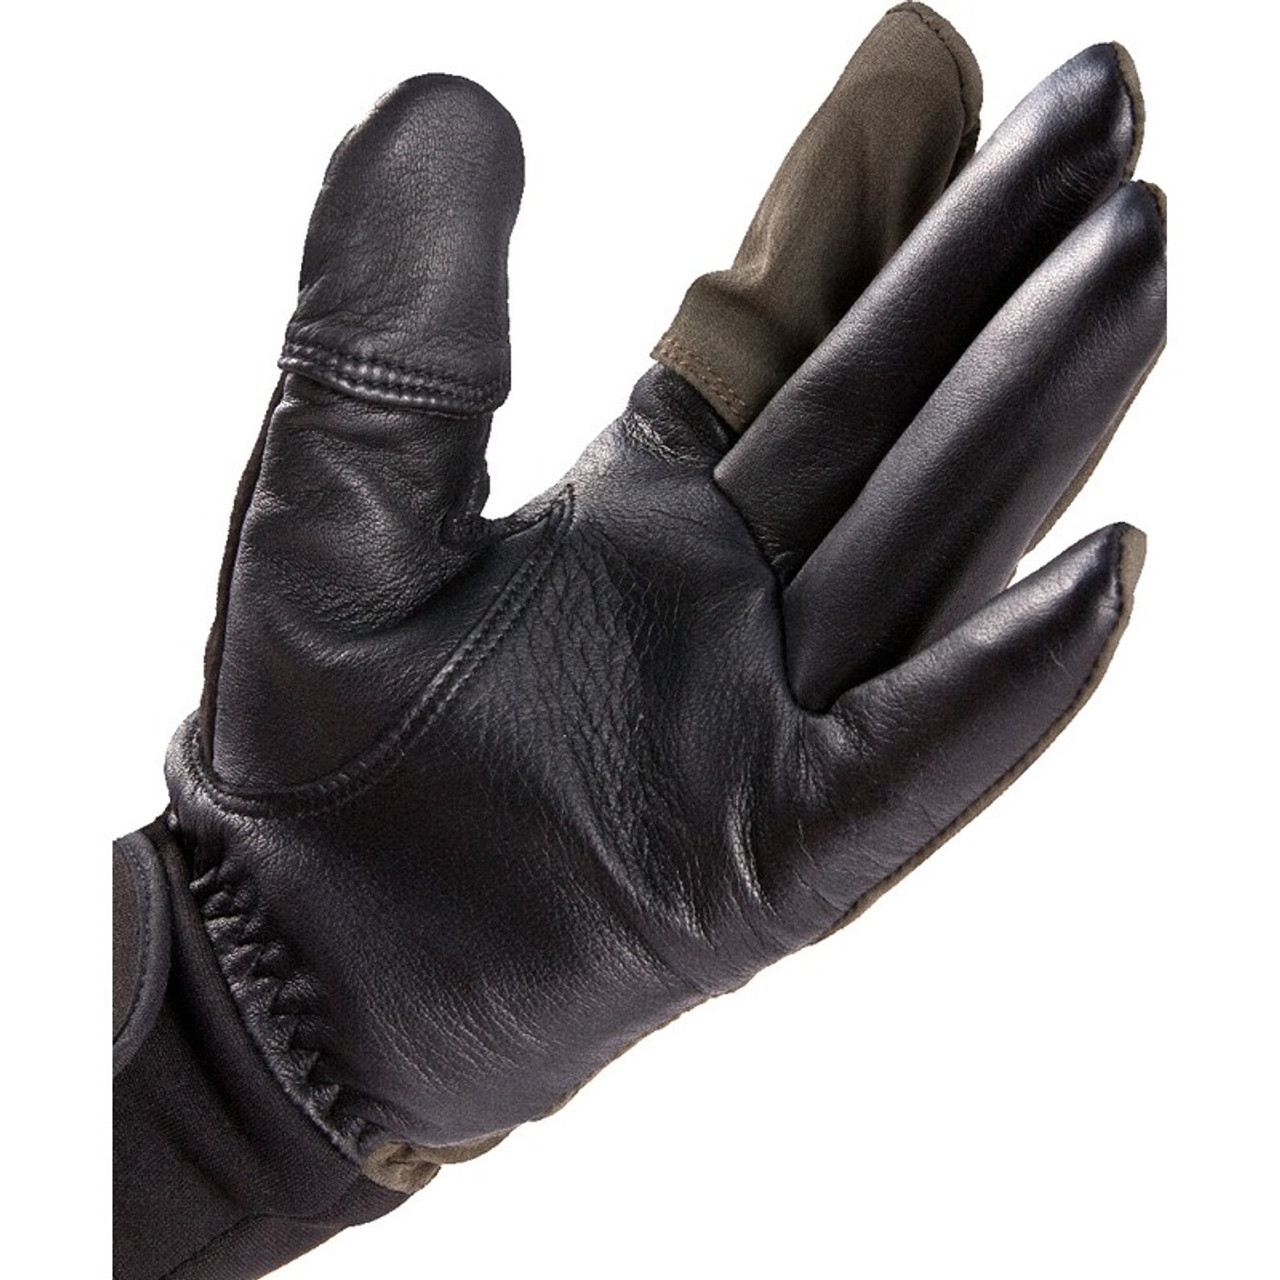 SealSkinz Sporting Gloves, buy from bradford stalker at cheap rates